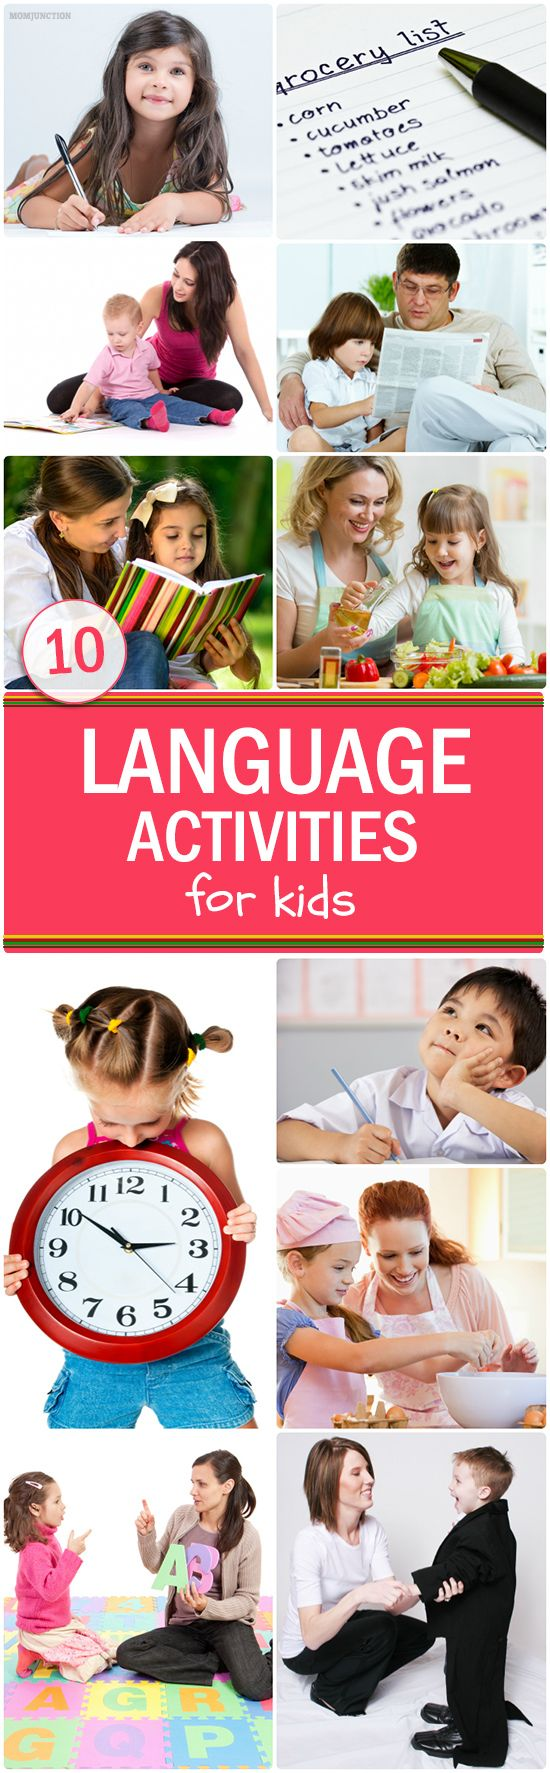 Language Activities For Kids: Language is one of the greatest achievements of mankind. The spoken and written word has the power to change the world. But it all starts slowly! With every word your child learns to speak, read and write, she is taking a step closer to becoming a leader.Here are a few #Activities you can explore together!